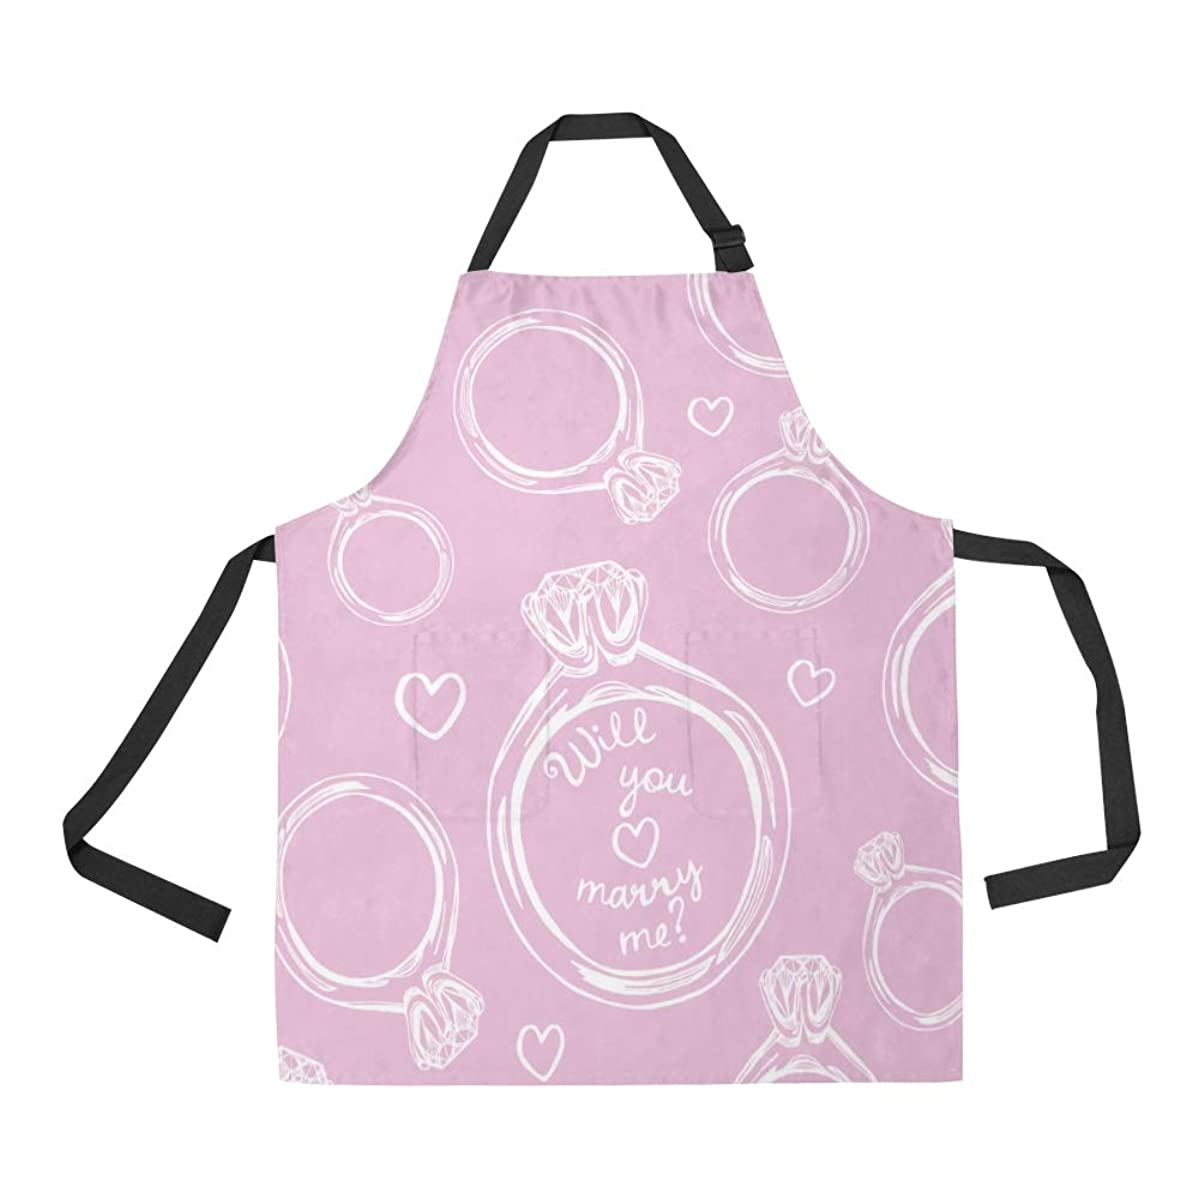 NQEONR Durable Wedding Ring Romantic Couple Diamond All Over Print Apron with an Adjustable Neck&Two Spacious Front Pocketst Unisex Kitchen Home Restaurant Apron for Baking Gardening